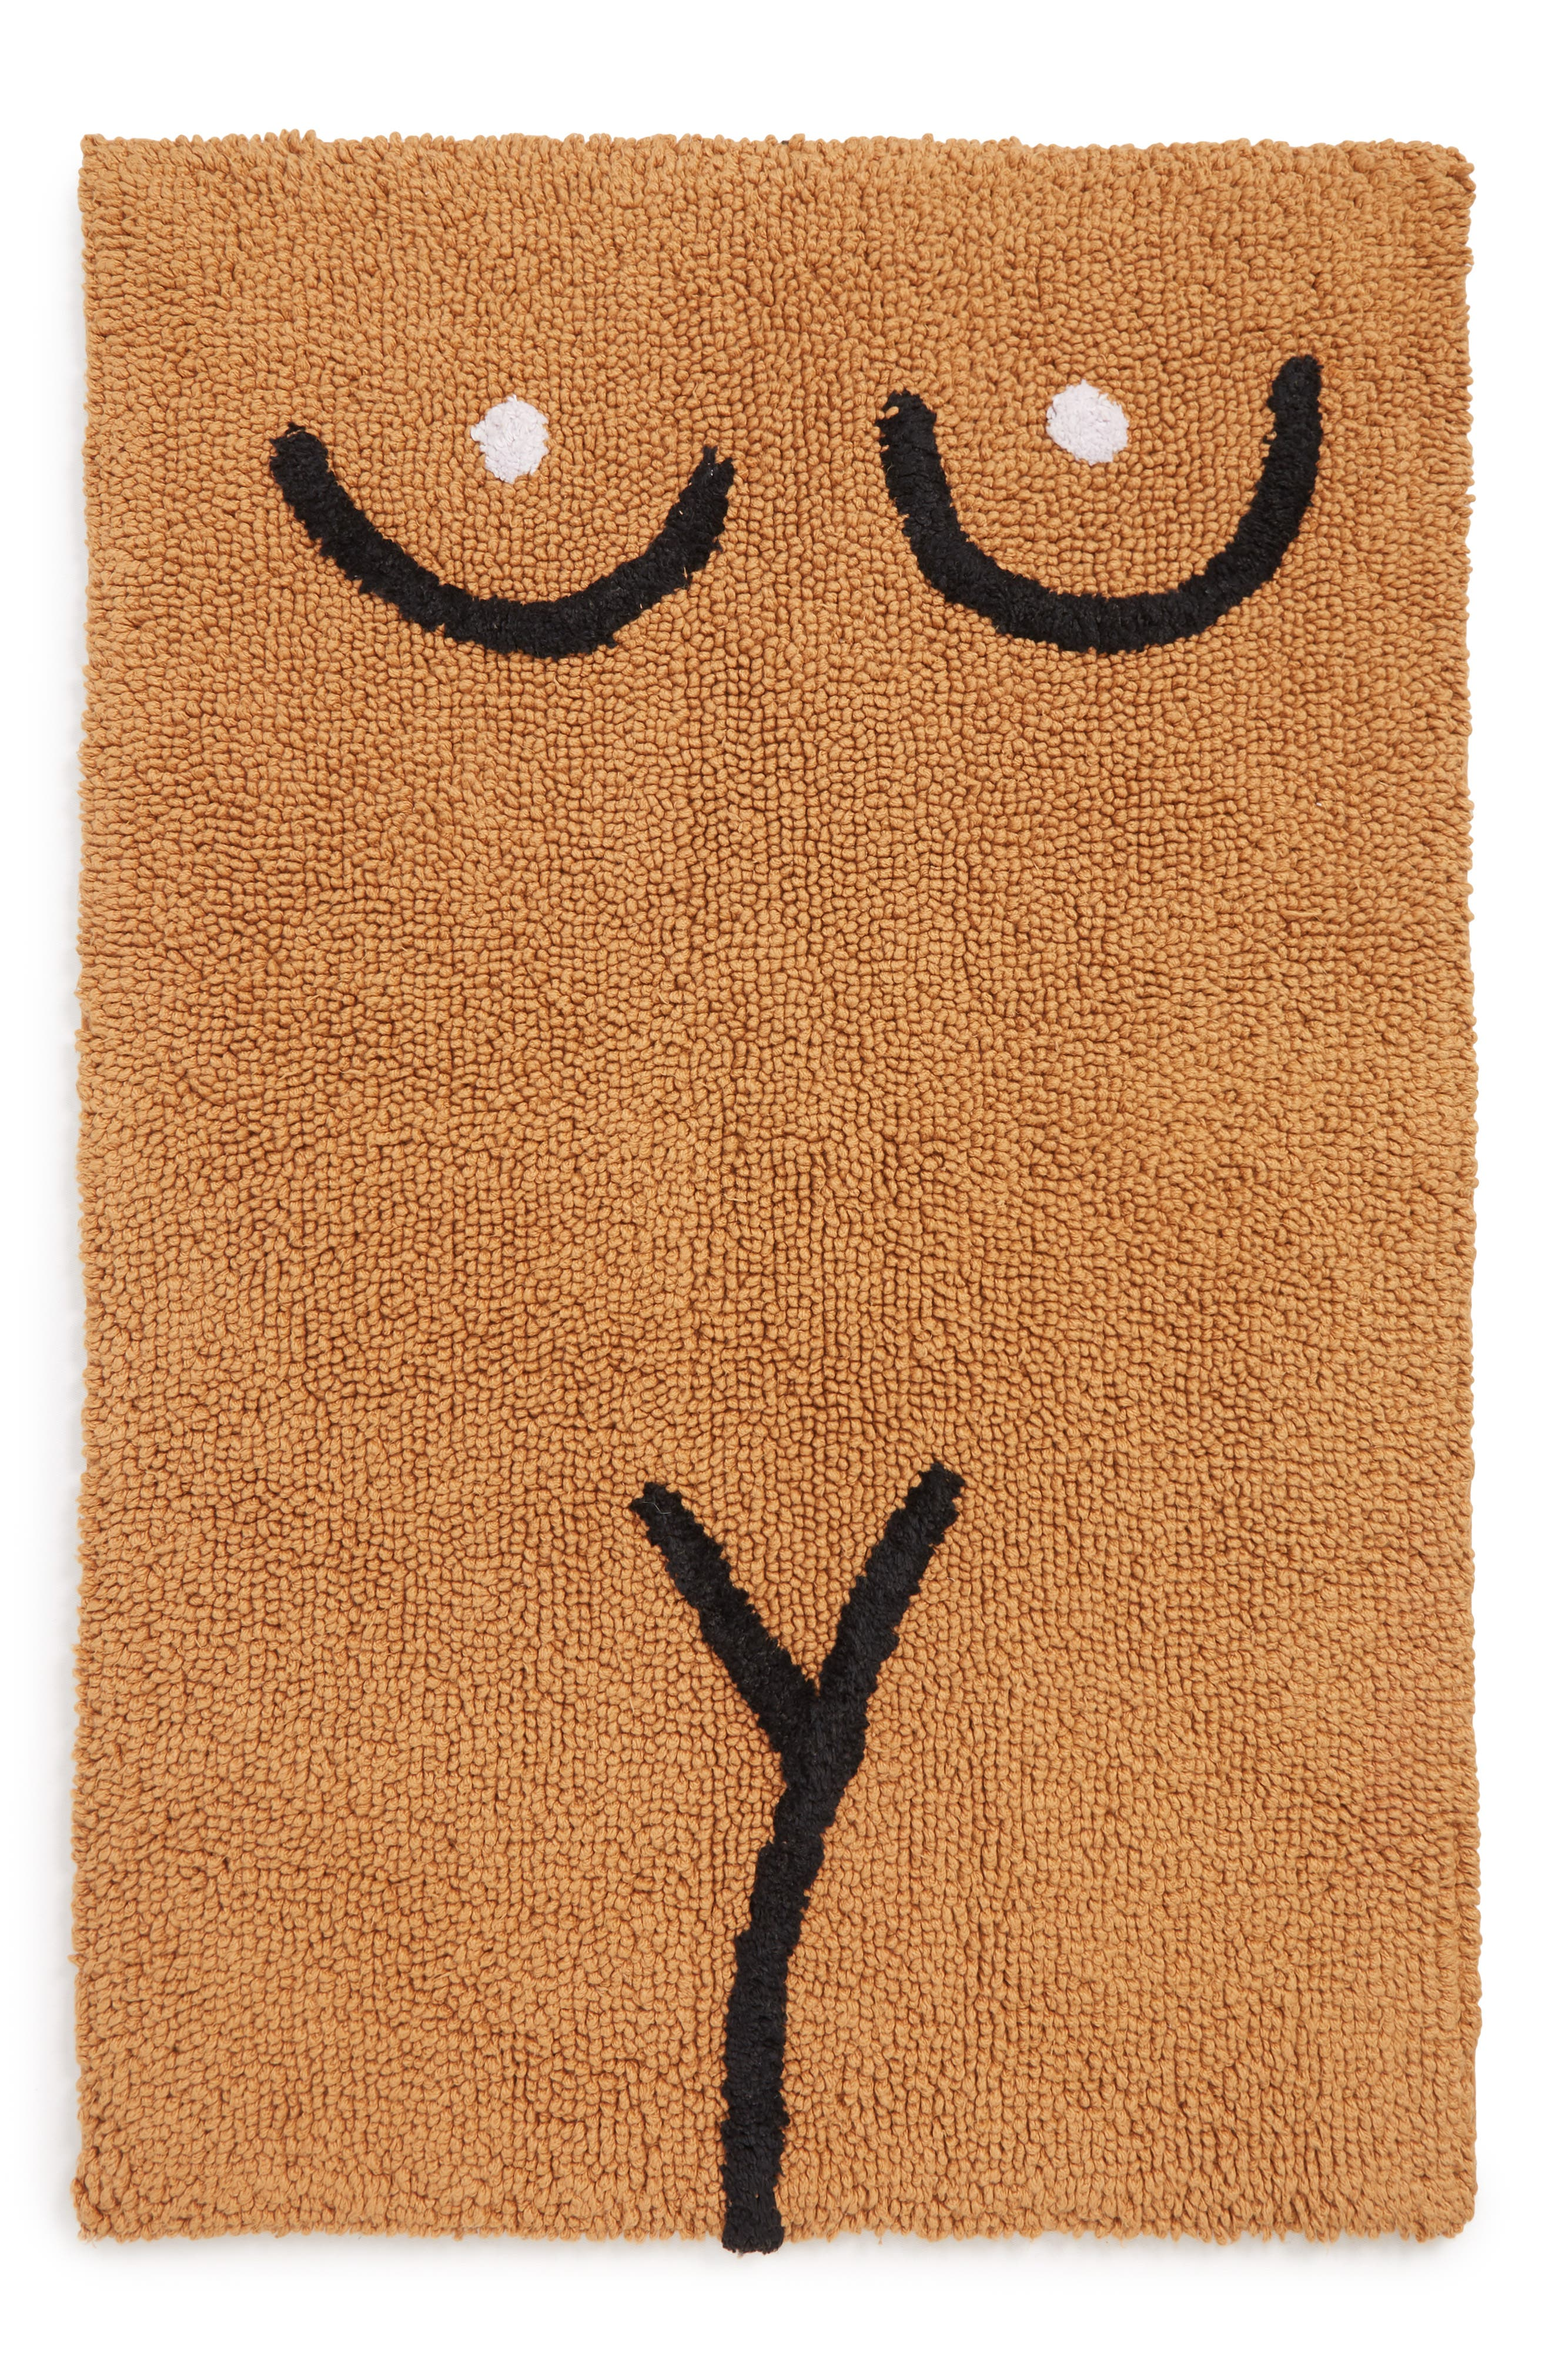 A minimalist, line-drawn female torso adds saucy, playful style to a thirsty cotton bathmat with a no-slip latex backing. Style Name: Cold Picnic Torso Bathmat. Style Number: 5652207. Available in stores.